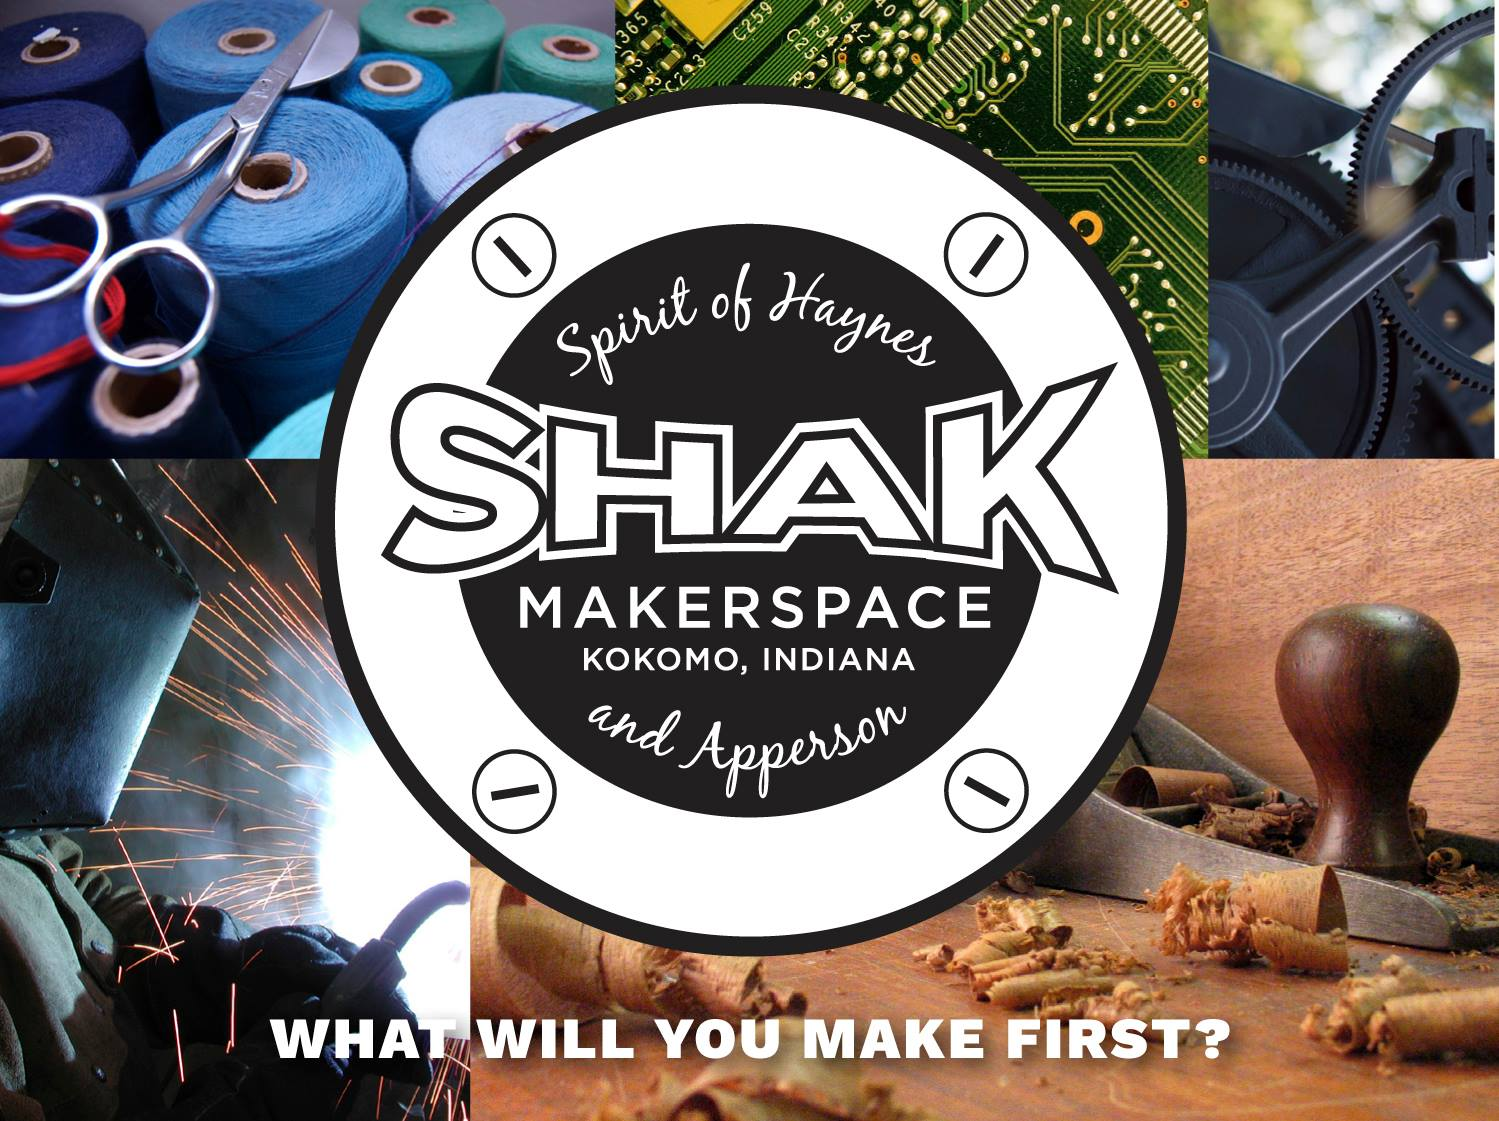 SHAK Makerspace